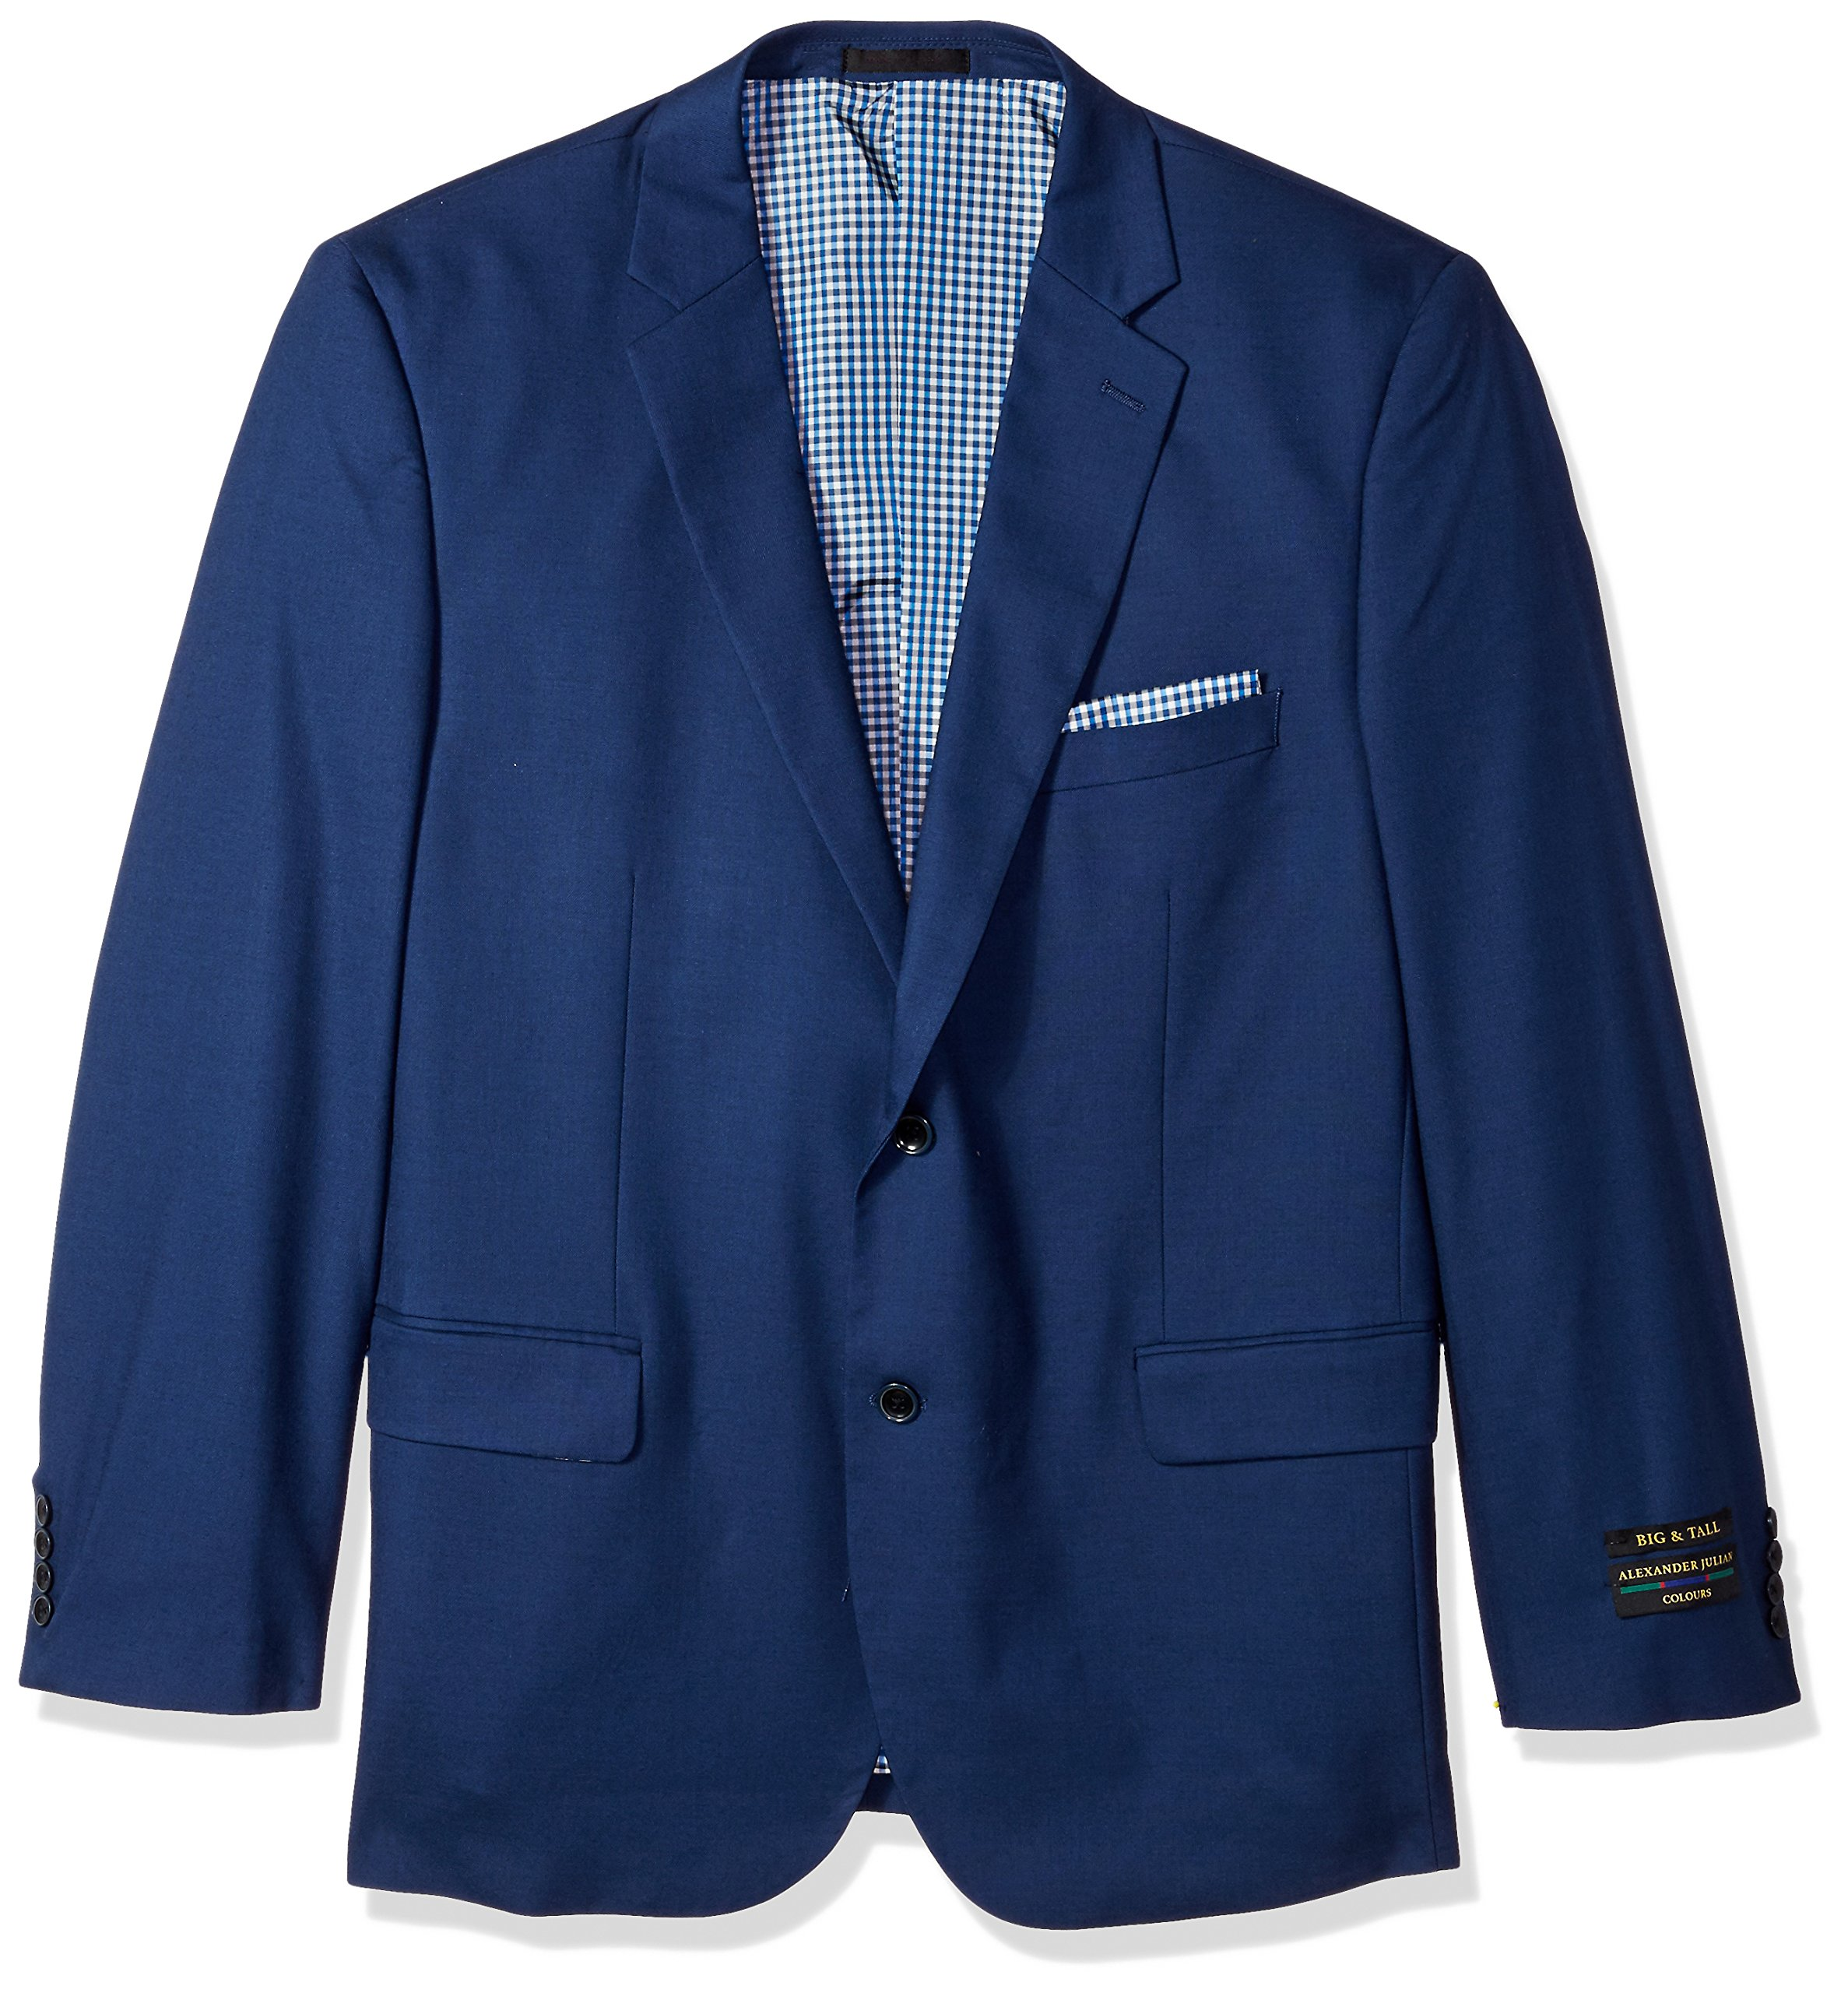 Alexander Julian Colours Men's Big and Tall Single Breasted Modern Fit Suit Separate Jacket, French Blue, 52 Regular by Alexander Julian Colours (Image #1)